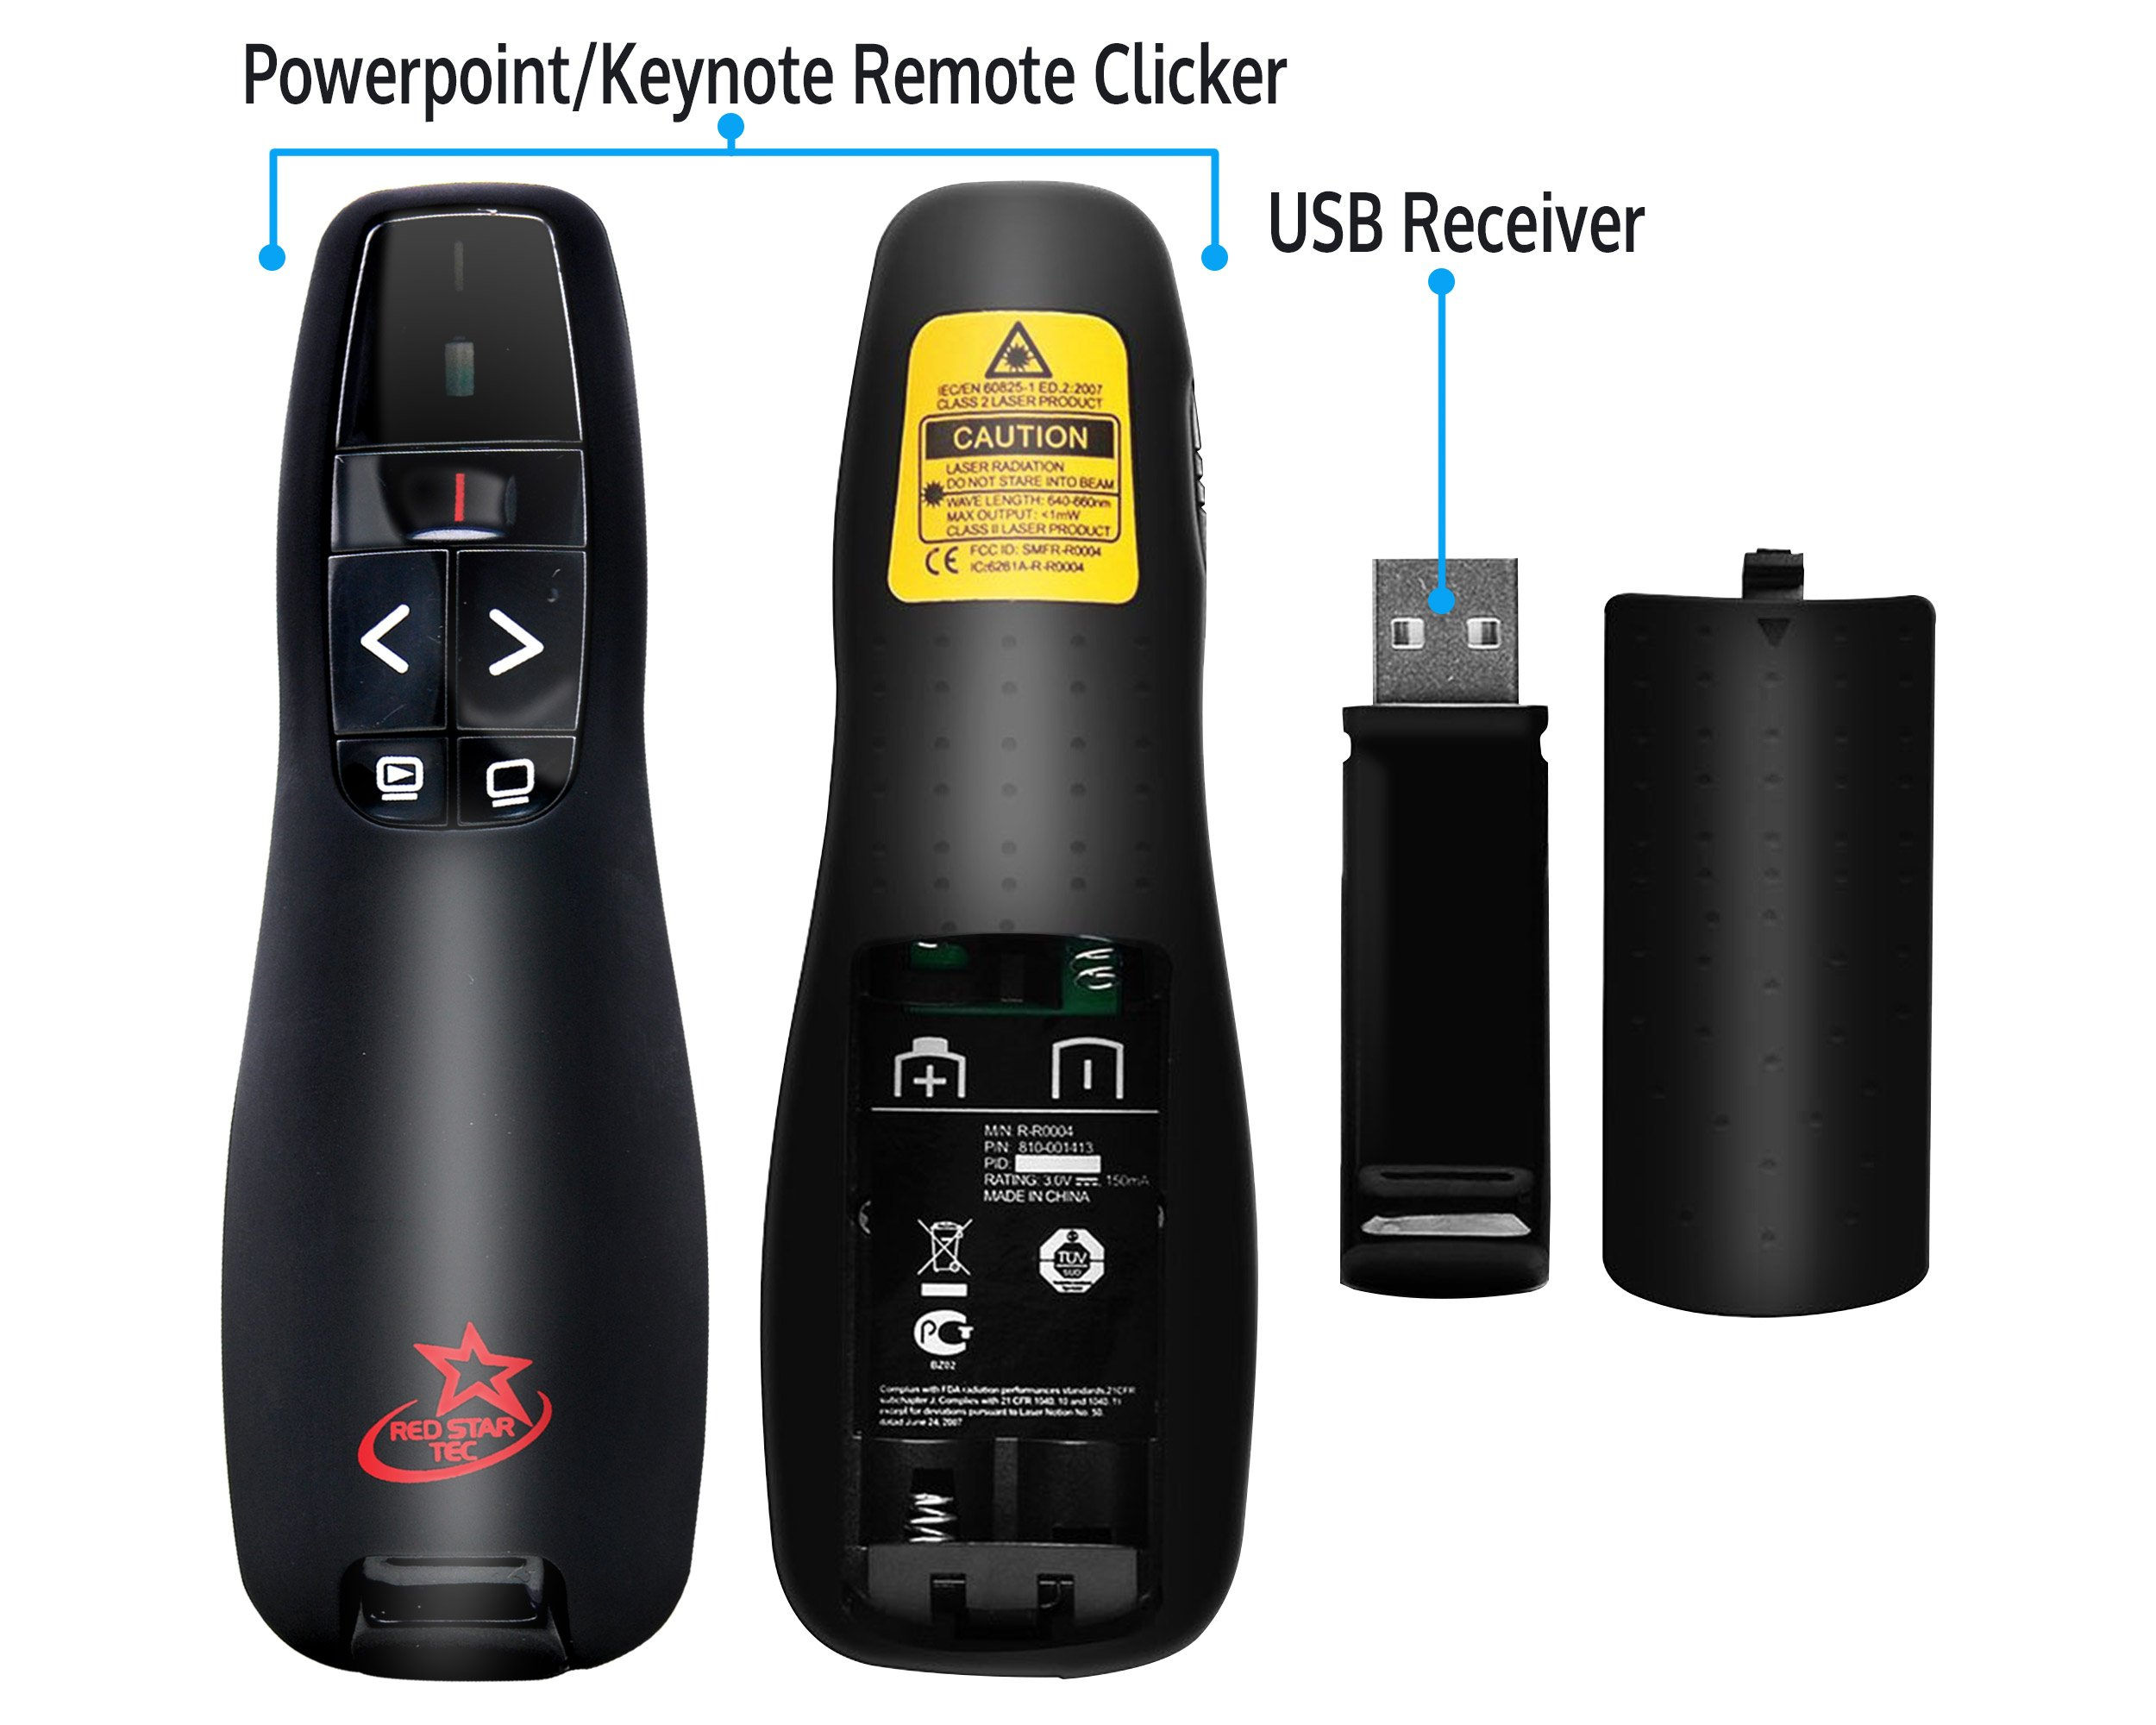 Red Star Tec Wireless Powerpoint and Keynote Presentation Remote Clicker PR-819 (Black, 1 Pack)